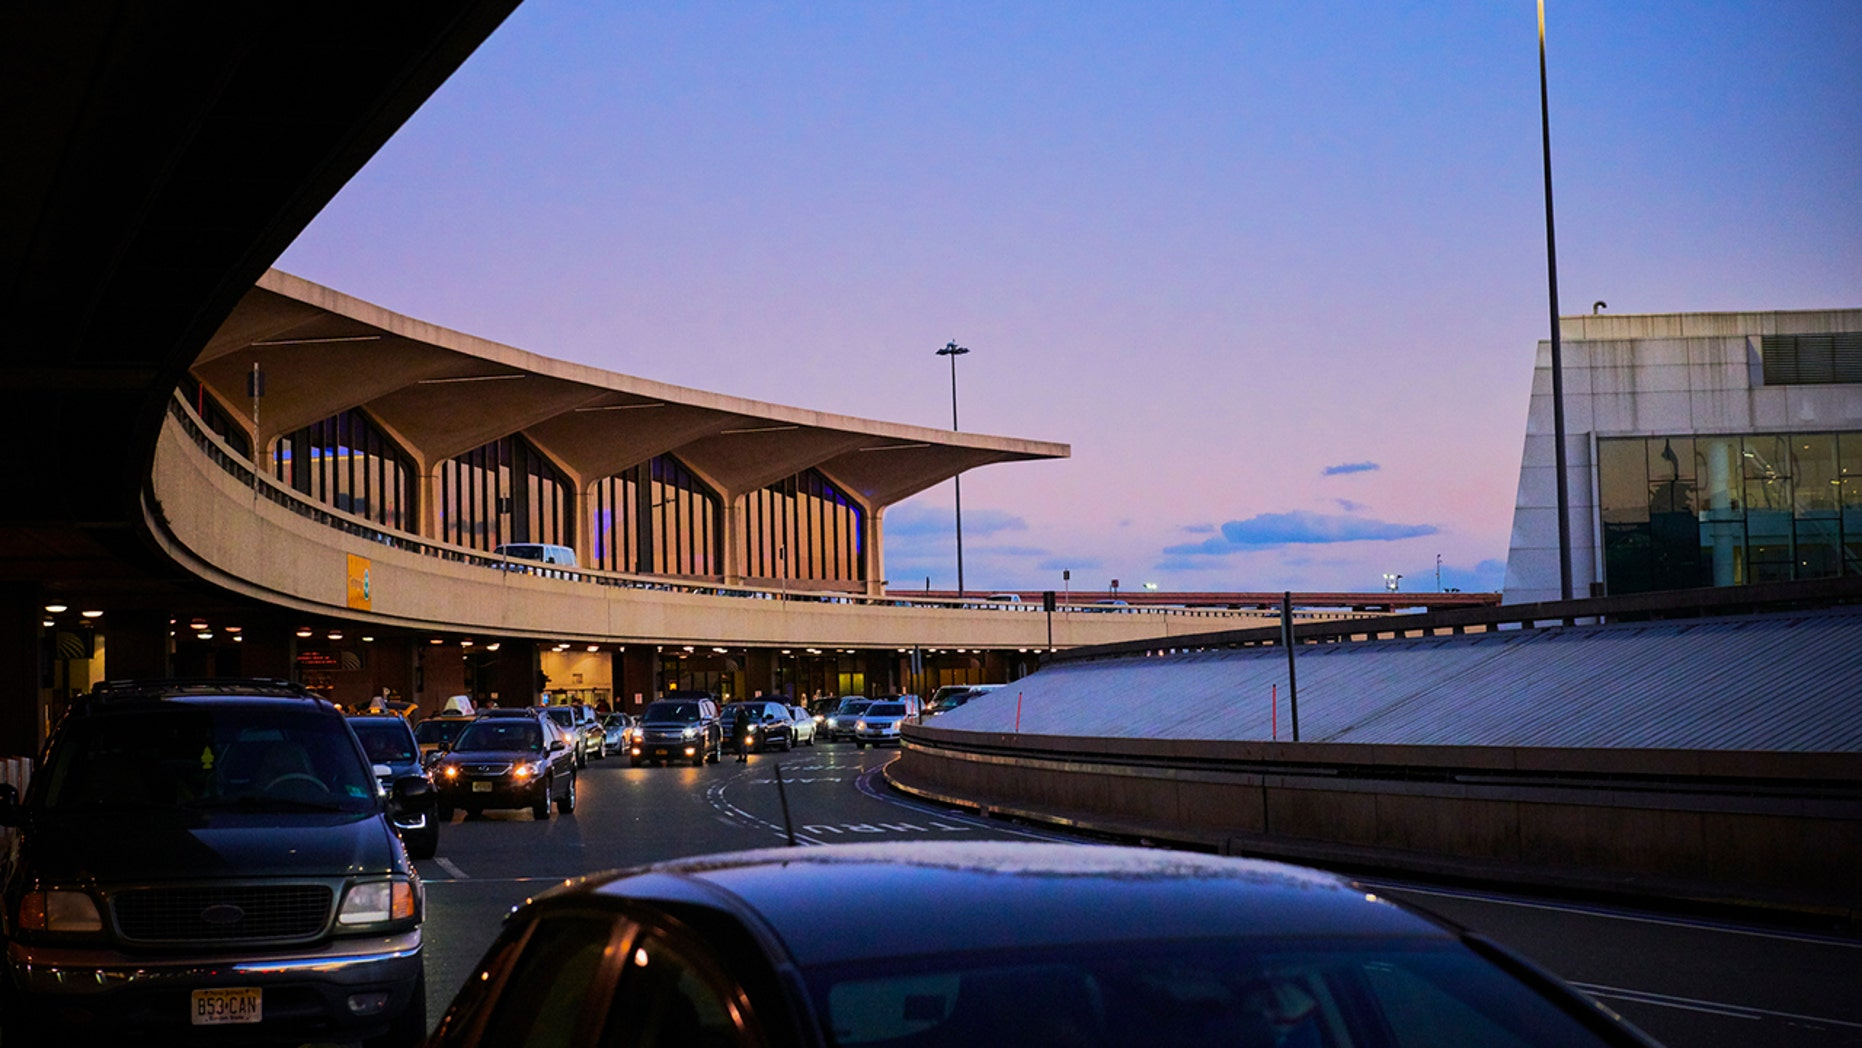 An attorney for Michael Papagni argued in federal court that no actual crime occurred during the alleged incident at Newark Liberty Airport.